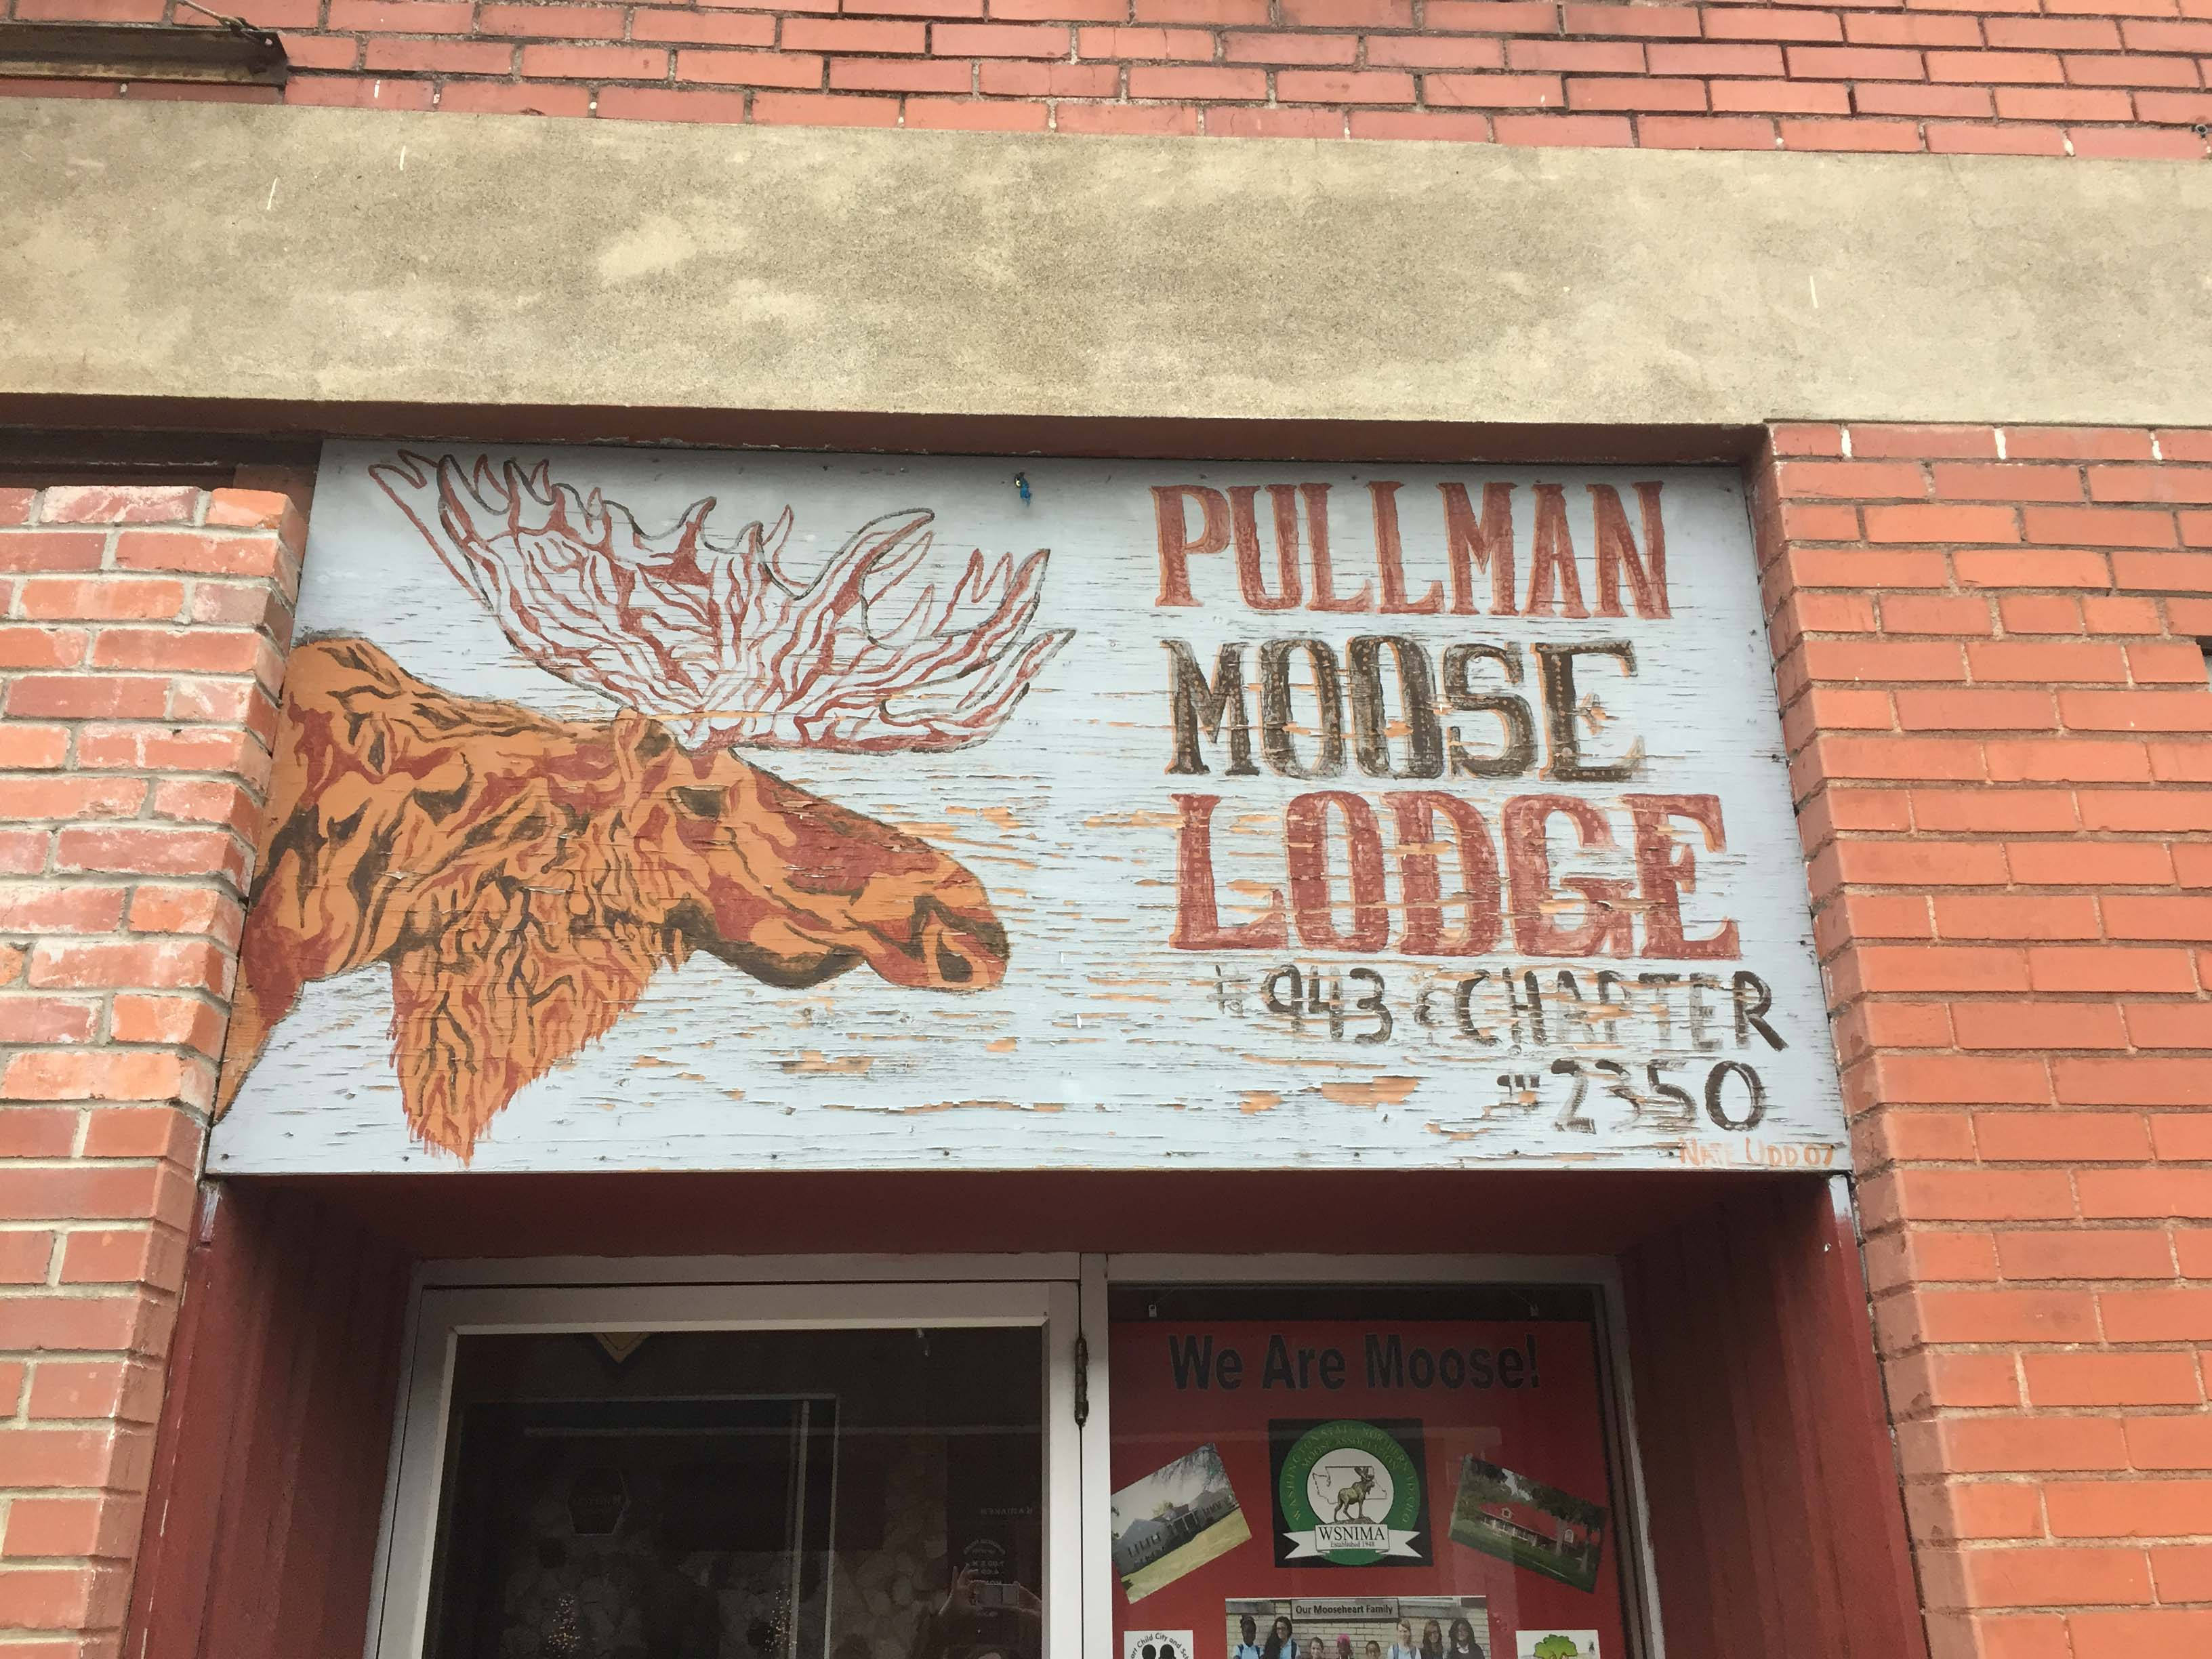 Pullman Moose Lodge signage, taken February 2018.